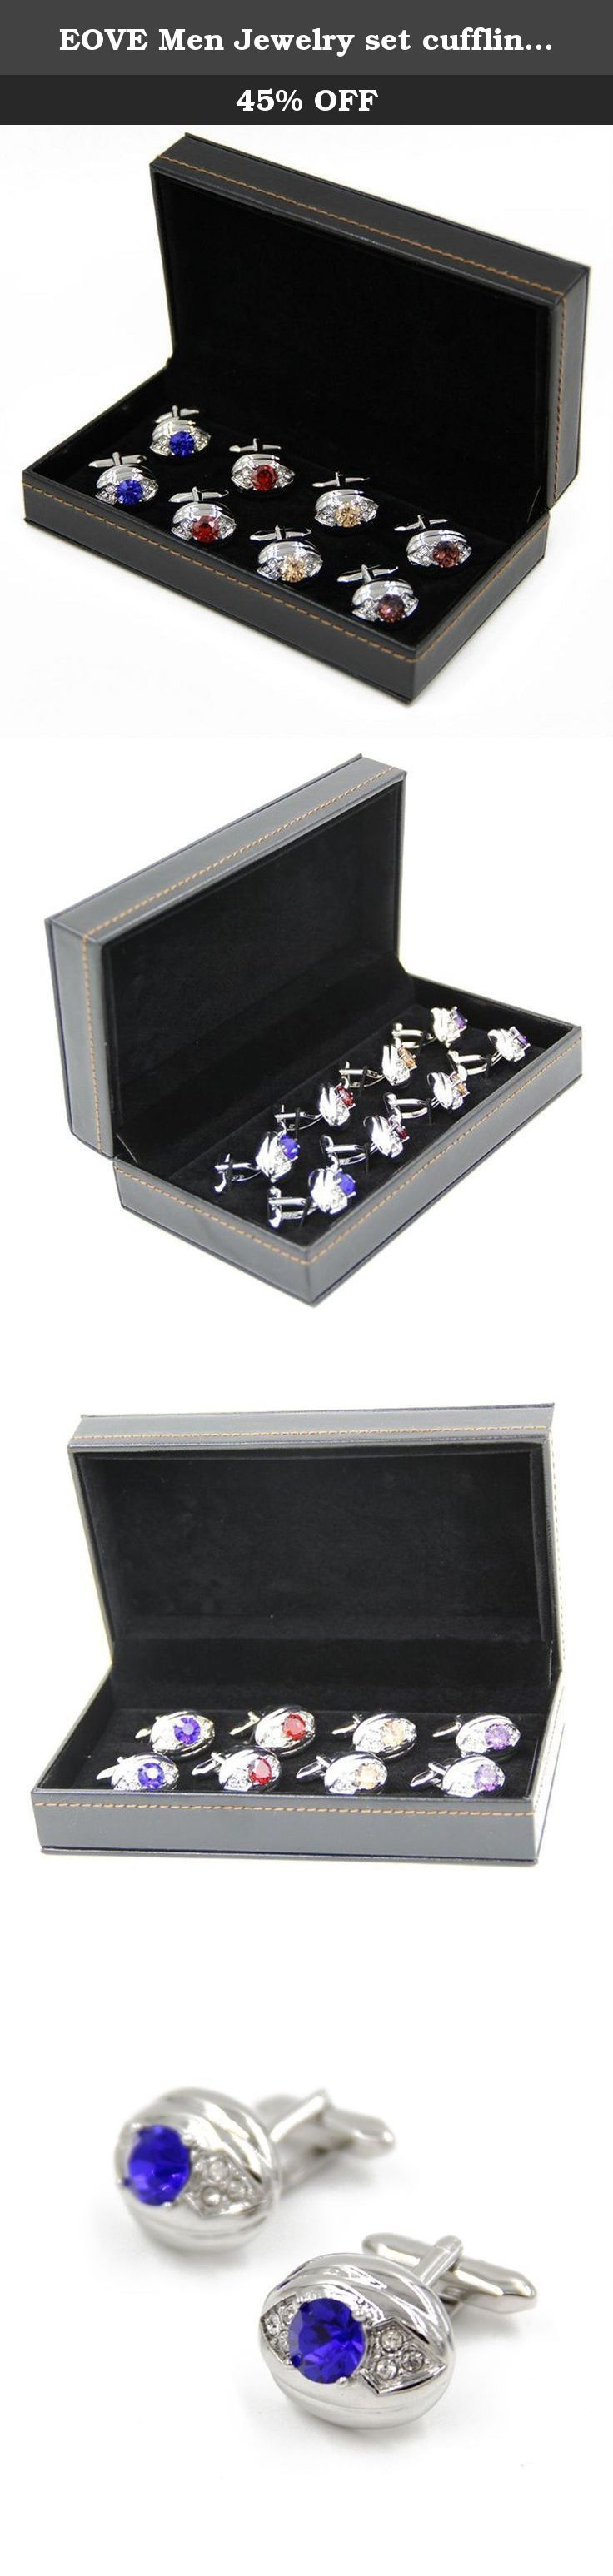 EOVE Men Jewelry set cufflink Luxury crystal cufflink 4 pair and Exquisite Box. Discover the EOVE Collection of jewelry. The selection of high-quality jewelry featured in the EOVE Collection offers Great values at affordable Price, they mainly made of high quality2988 Sterling Silver, Freshwater Pearl, Srovski, Crystal, Opal Stone,Gold ,Platinum, Stainless Steel, Tungsten, Silver and Leather. Find a special gift for a loved one or a beautiful piece that complements your personal style…